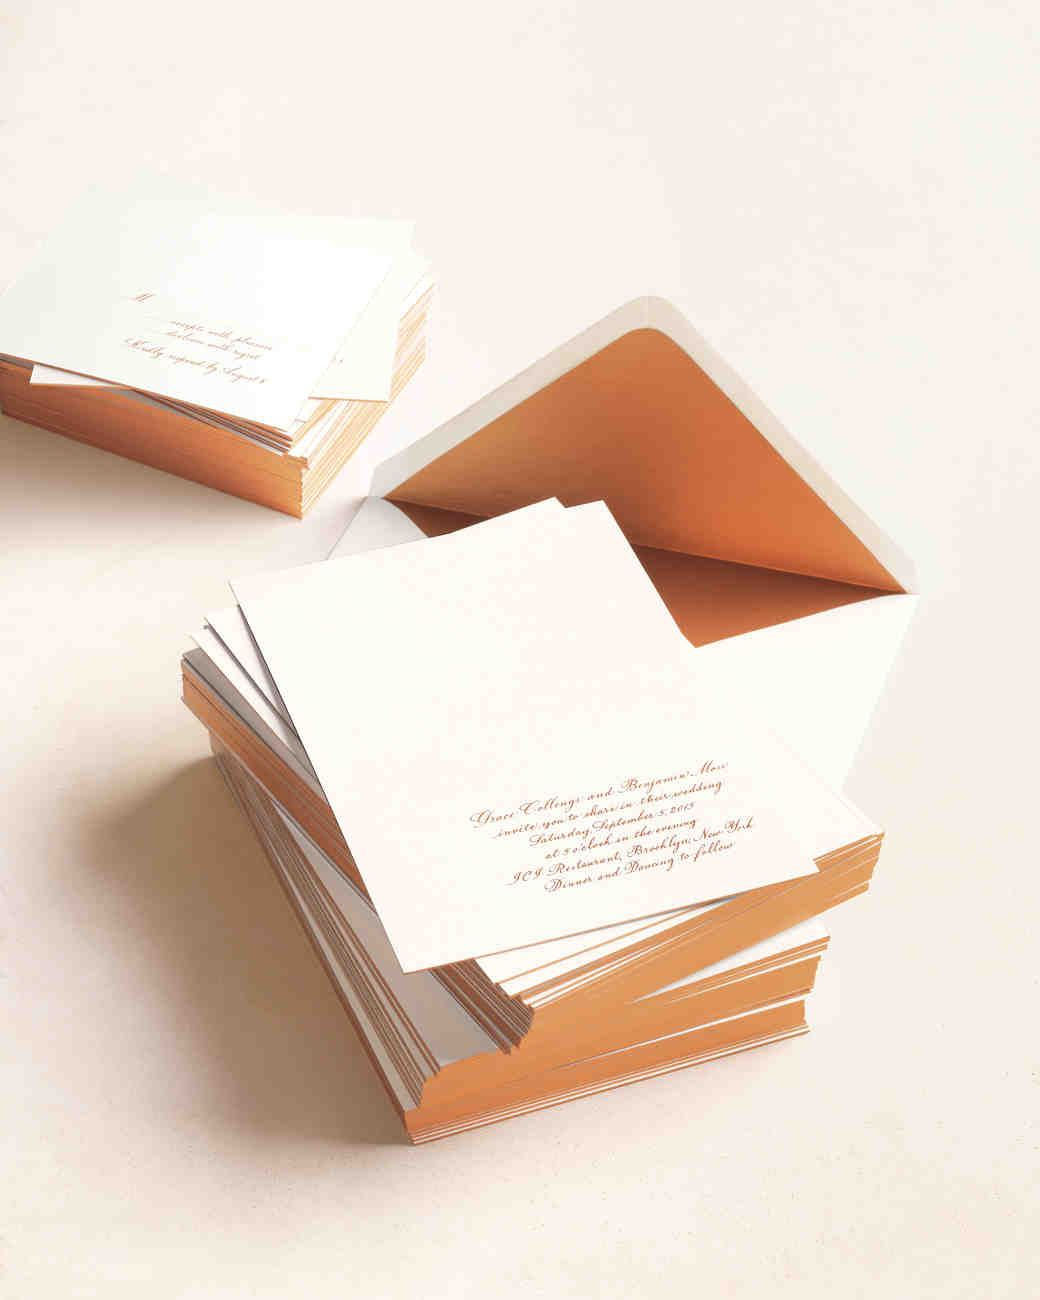 10 things you should know before addressing assembling and mailing 10 things you should know before addressing assembling and mailing your wedding invitations martha stewart weddings filmwisefo